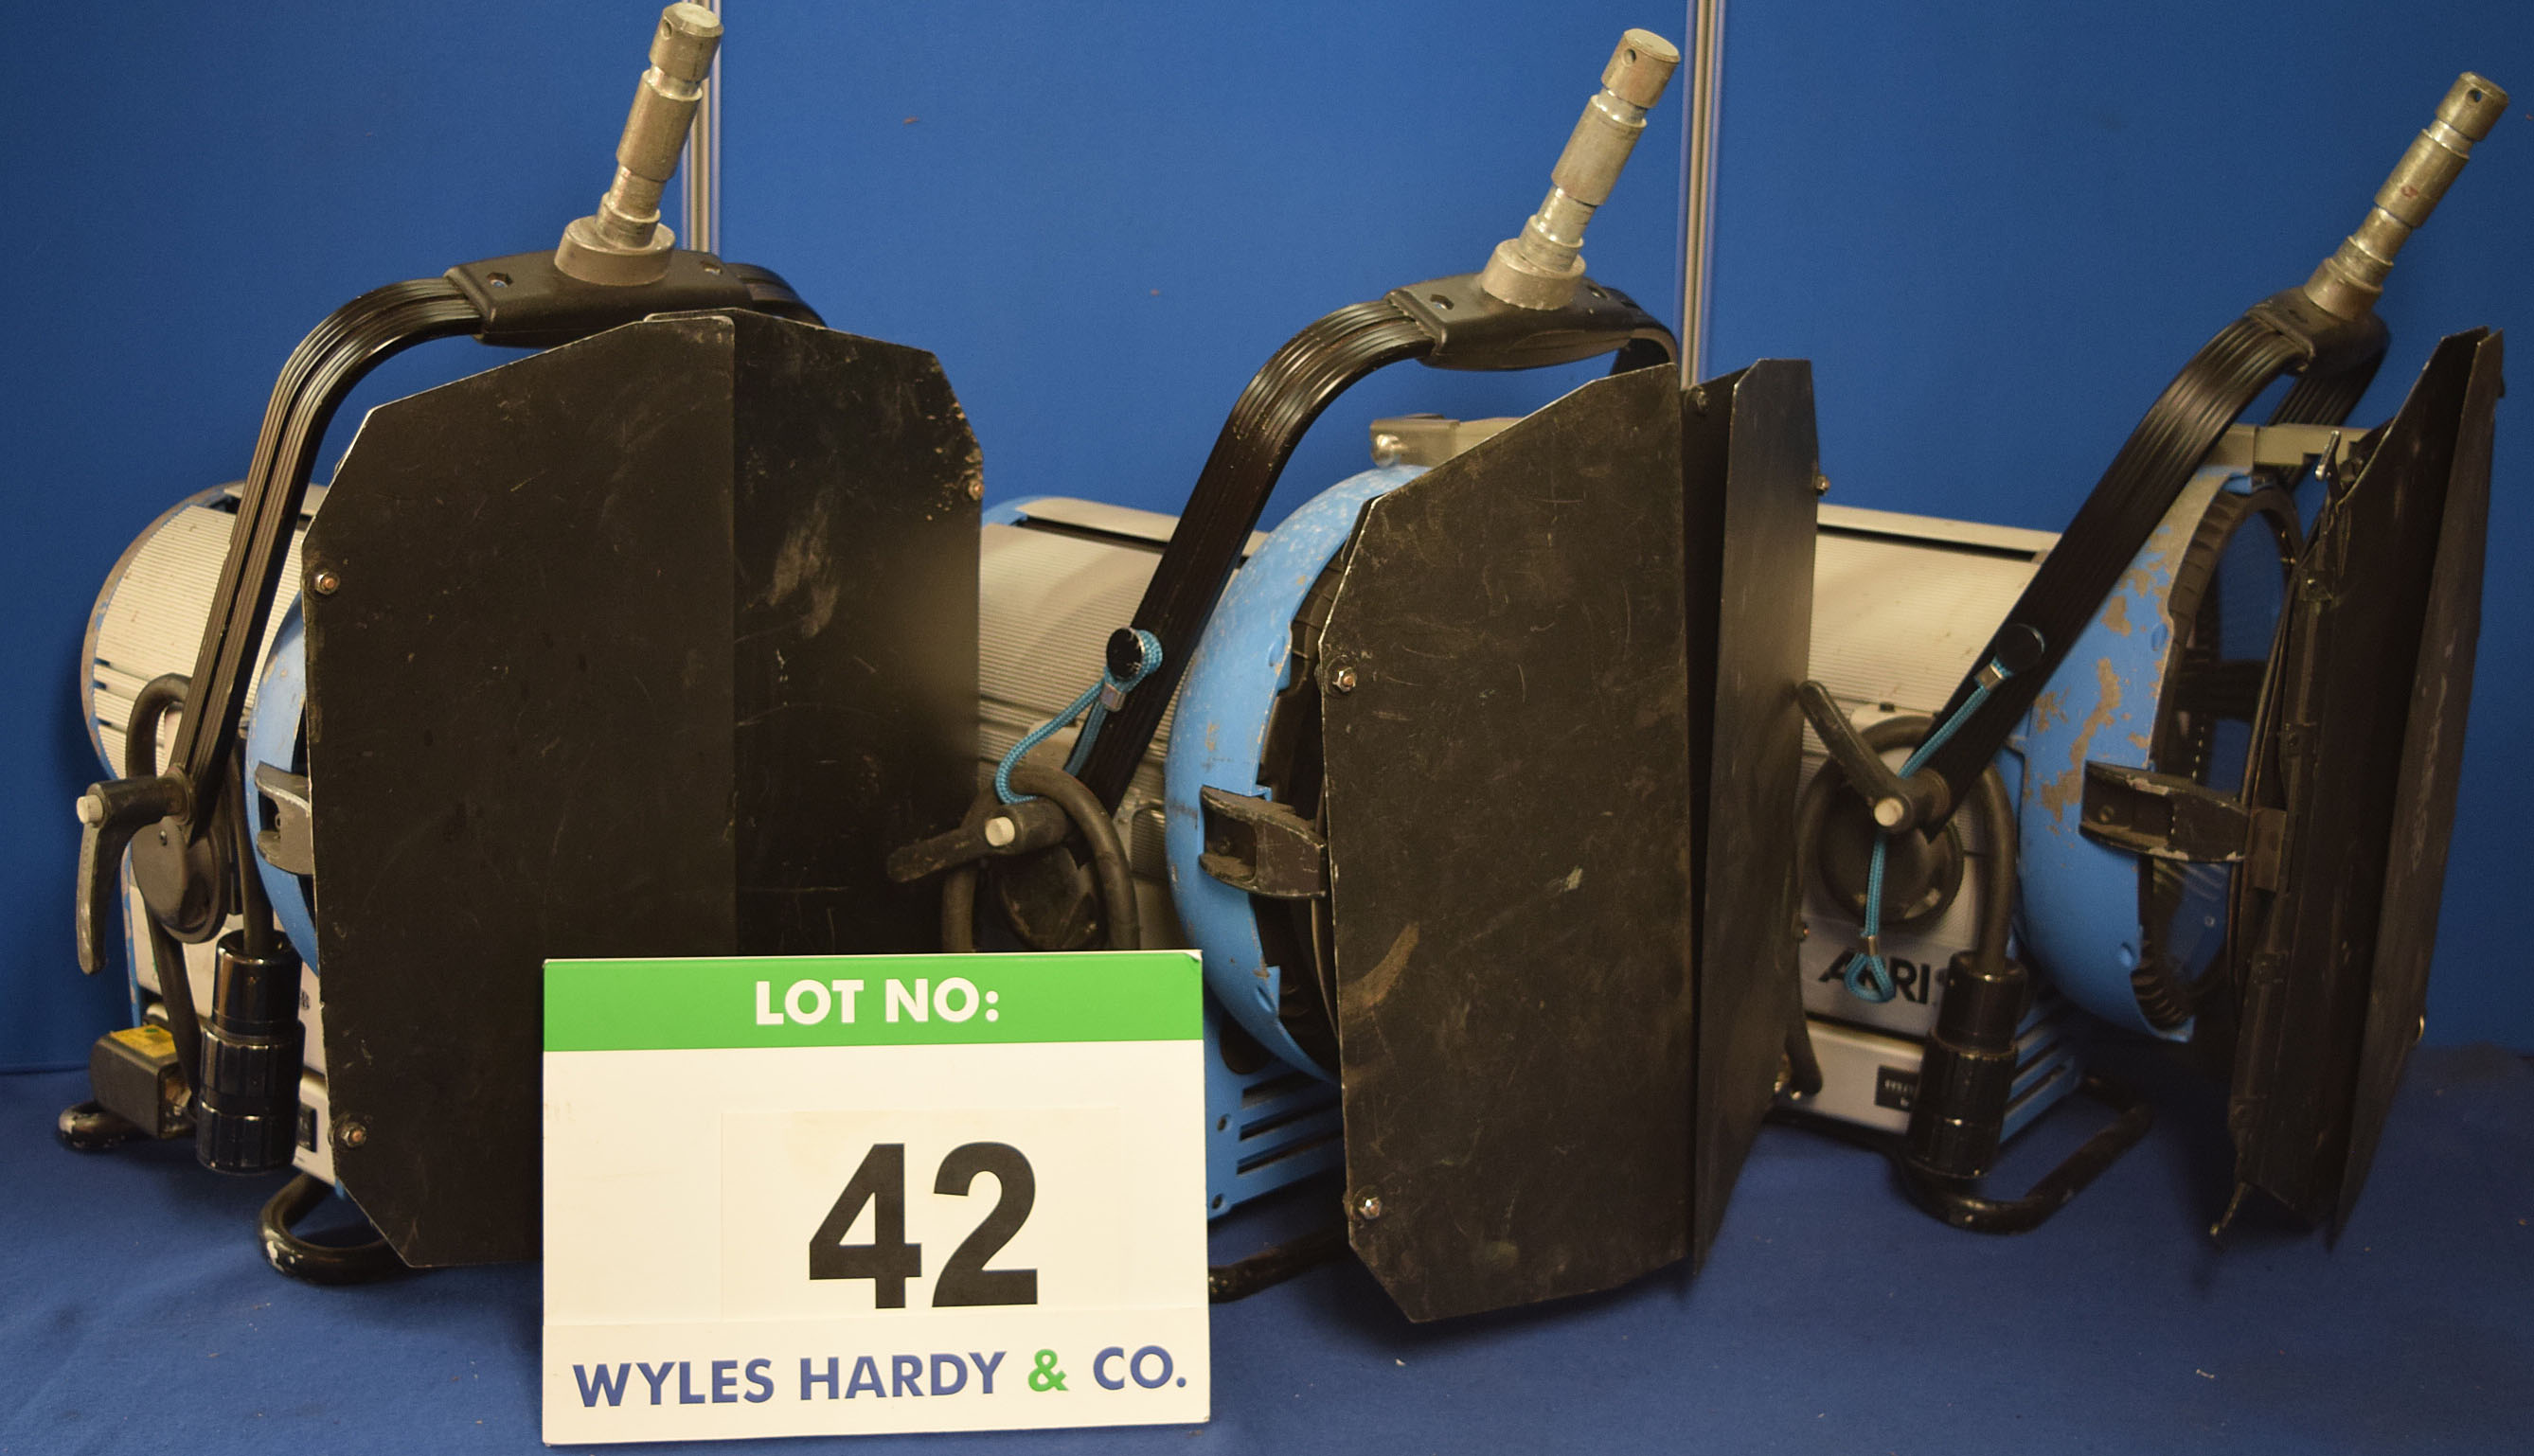 Lot 42 - Three ARRI M18 1800W Lights each with fitted Barn Doors and Stirrup Mounts. Recorded Hours: 670